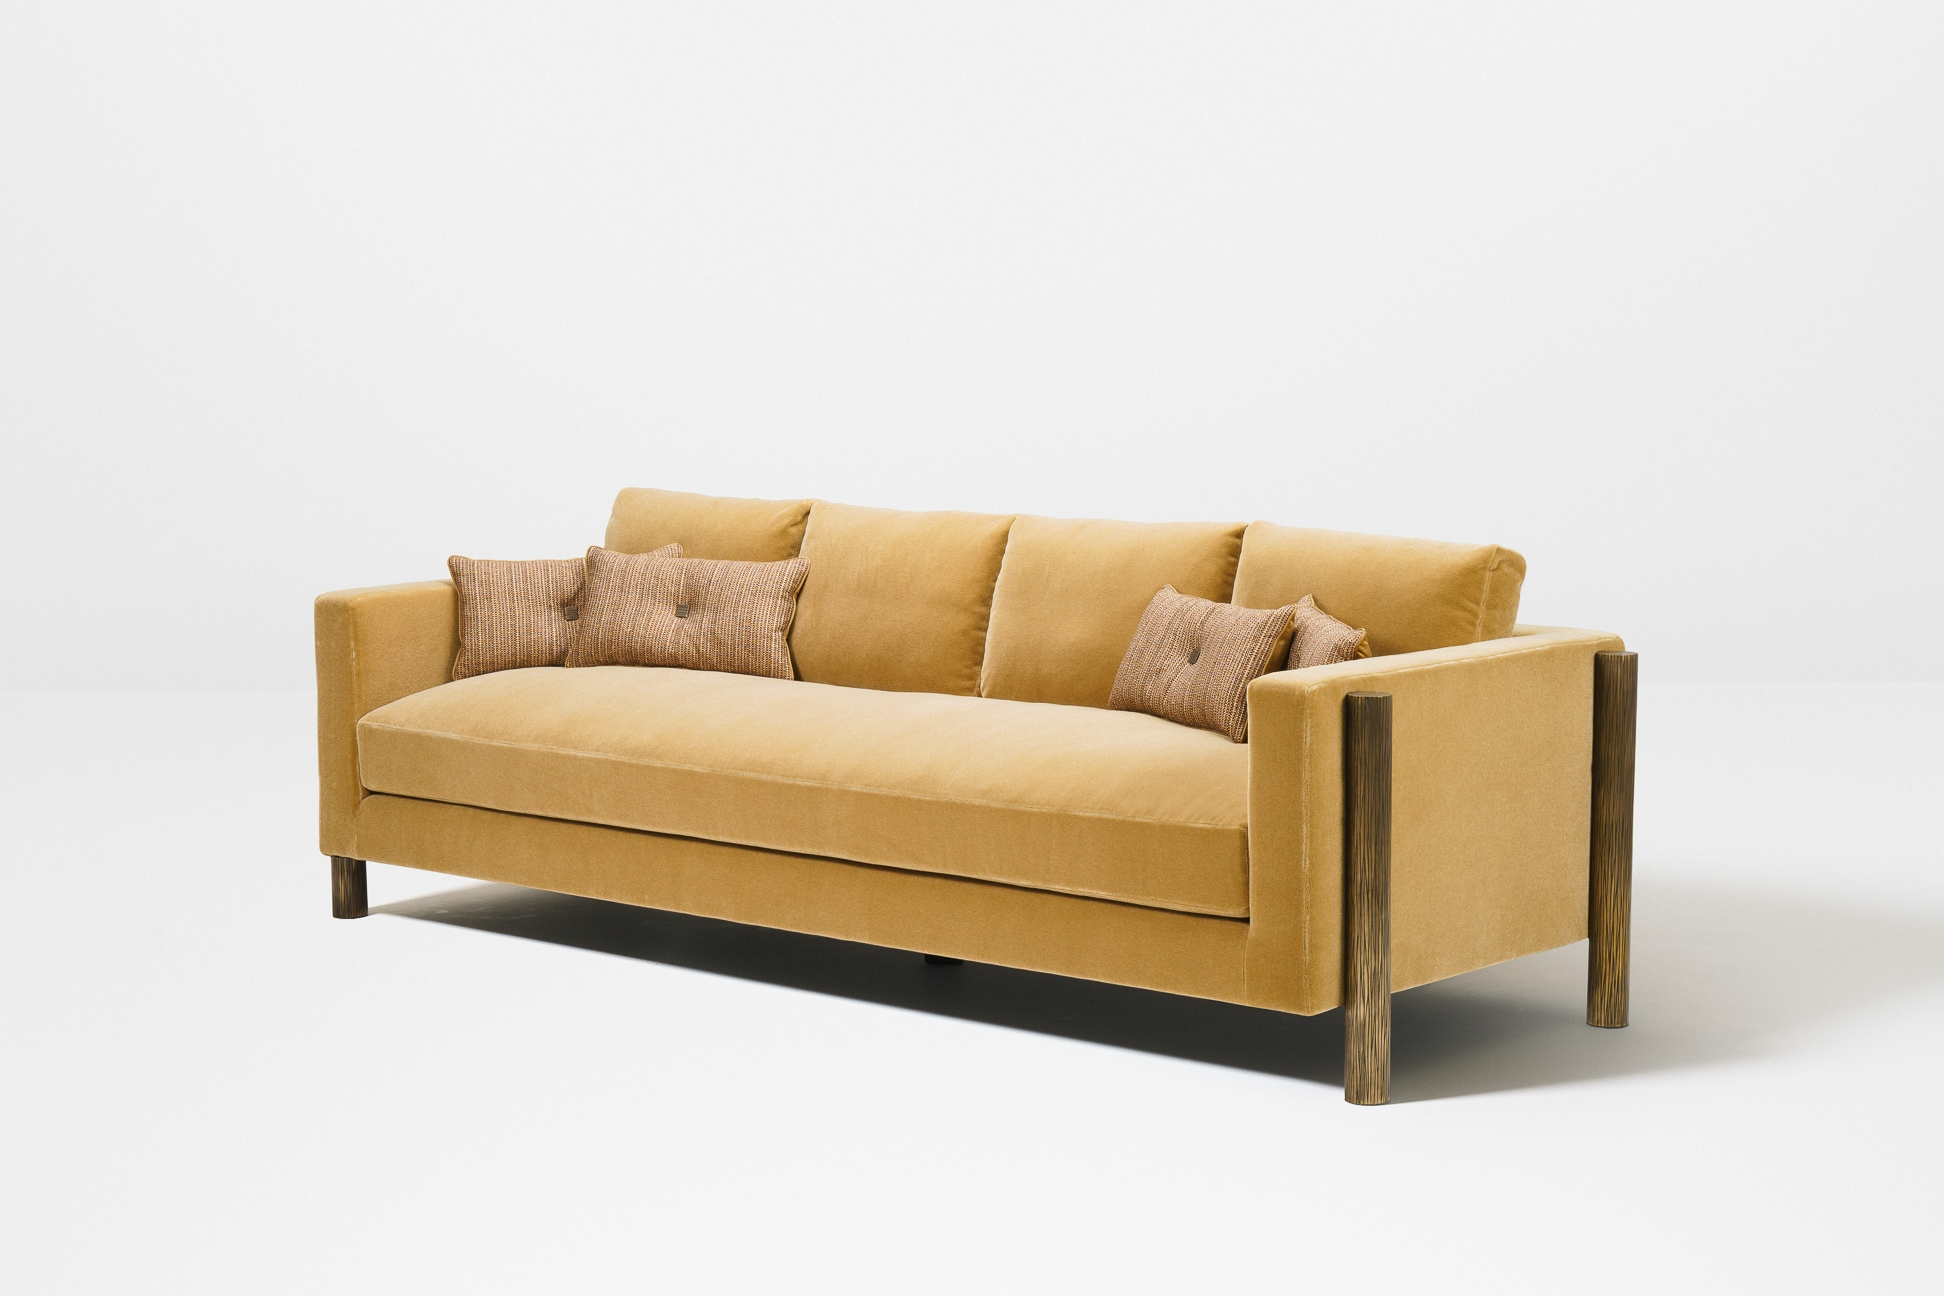 Turgi sofa - angle - cushions-LOW-RES.jpg